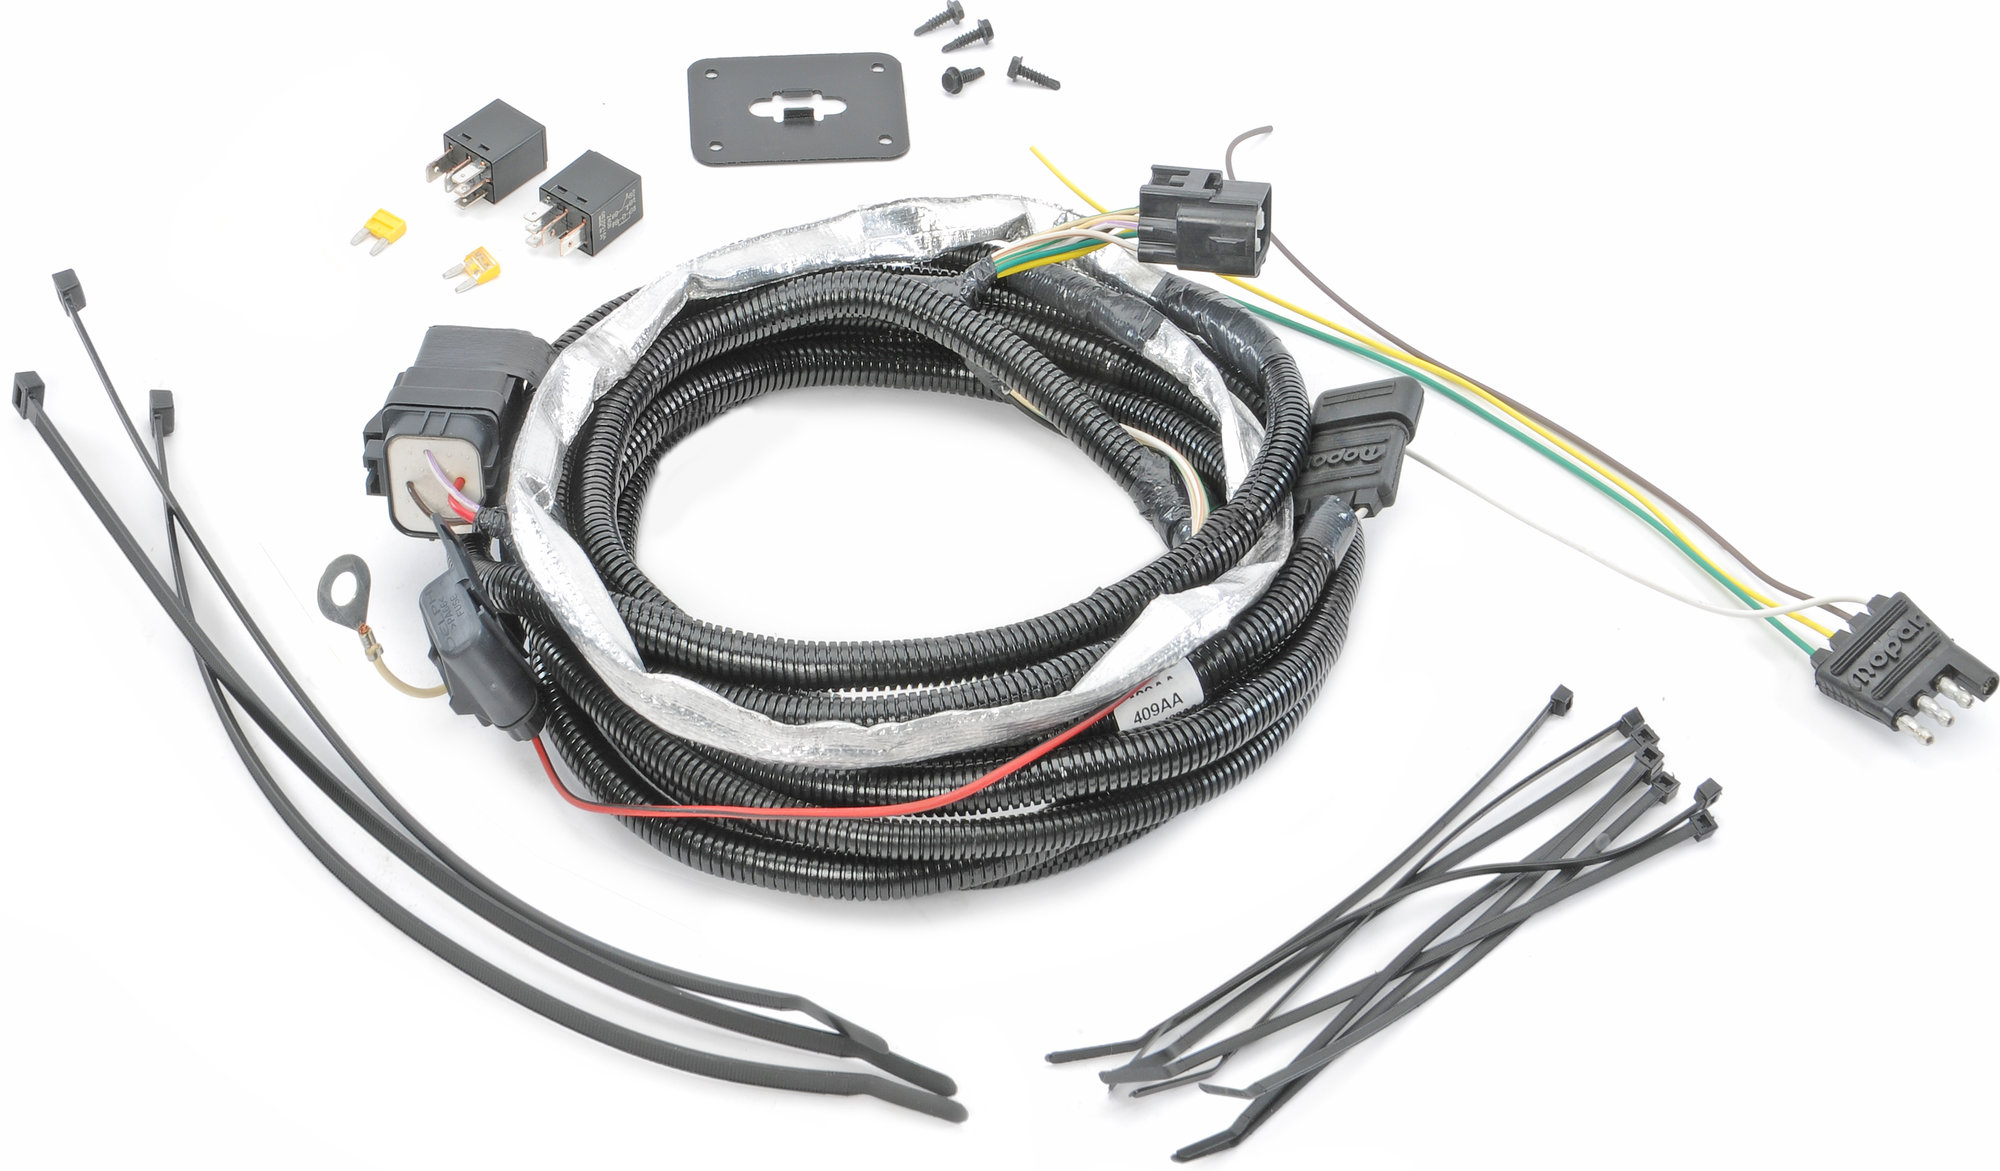 Mopar 82209770AB 4-Way Flat Hitch Wiring Harness for 05-06